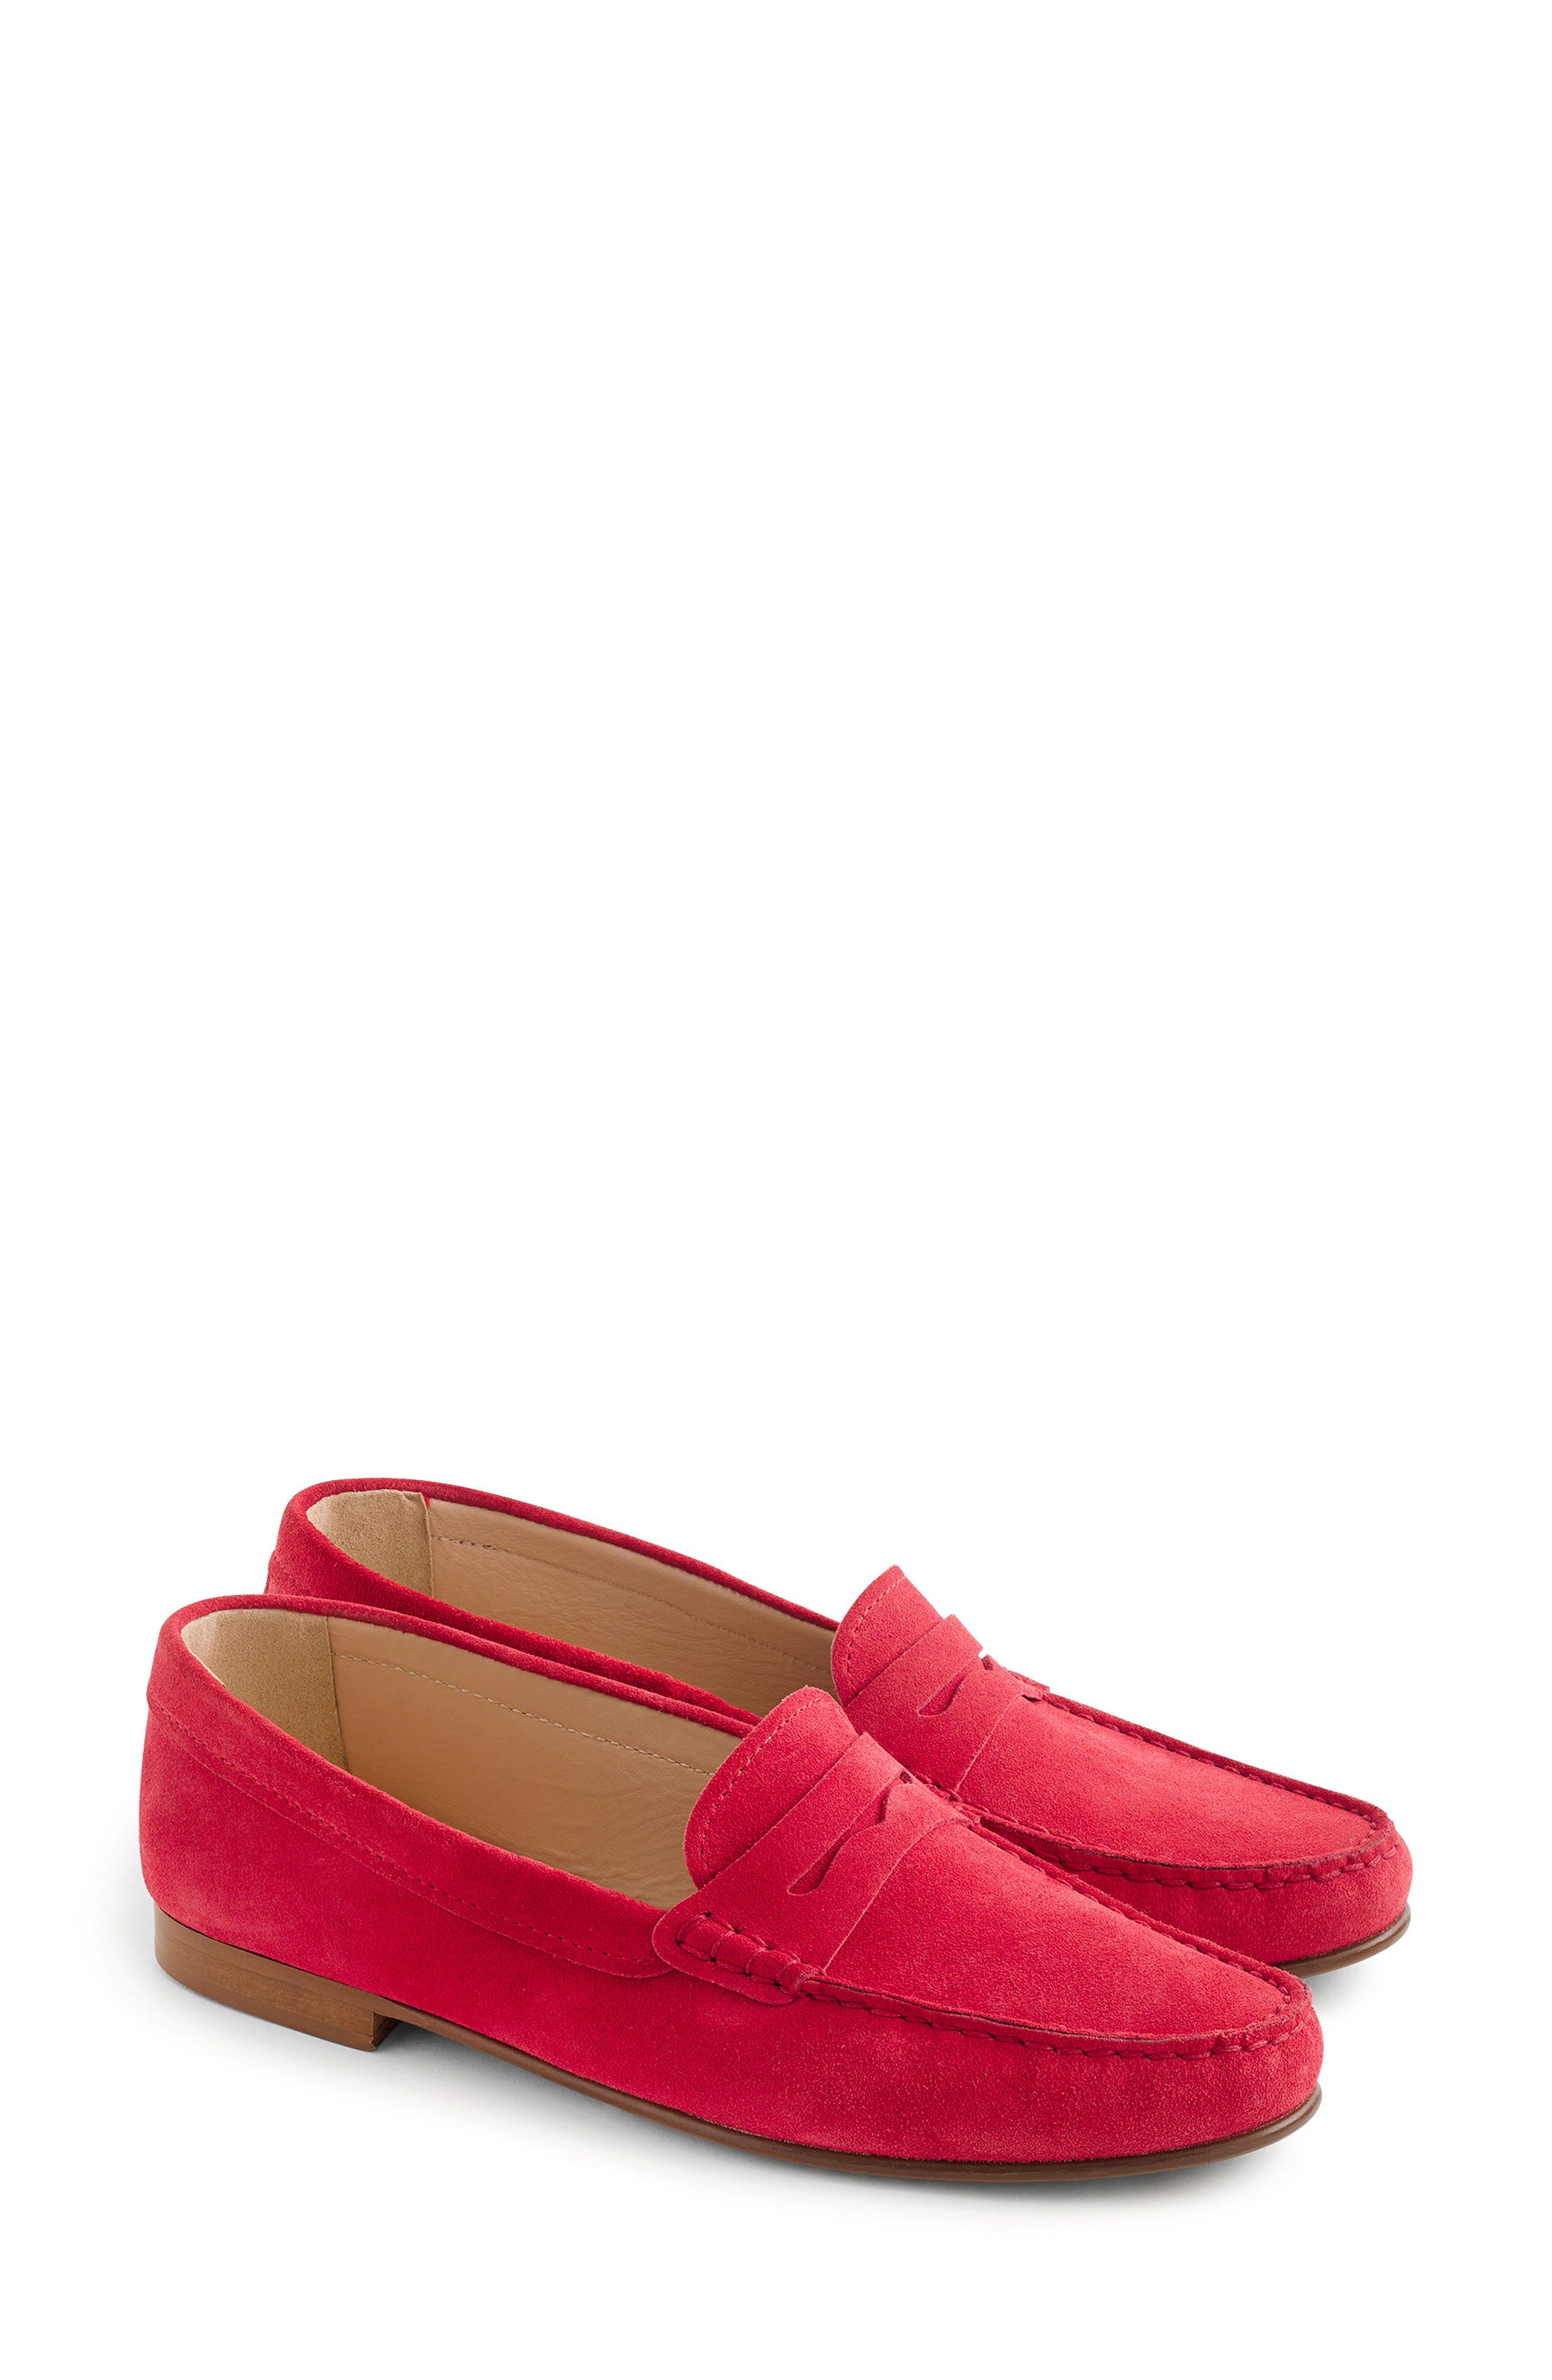 Alternate Image 1 Selected - J. Crew Felix Loafer (Women)